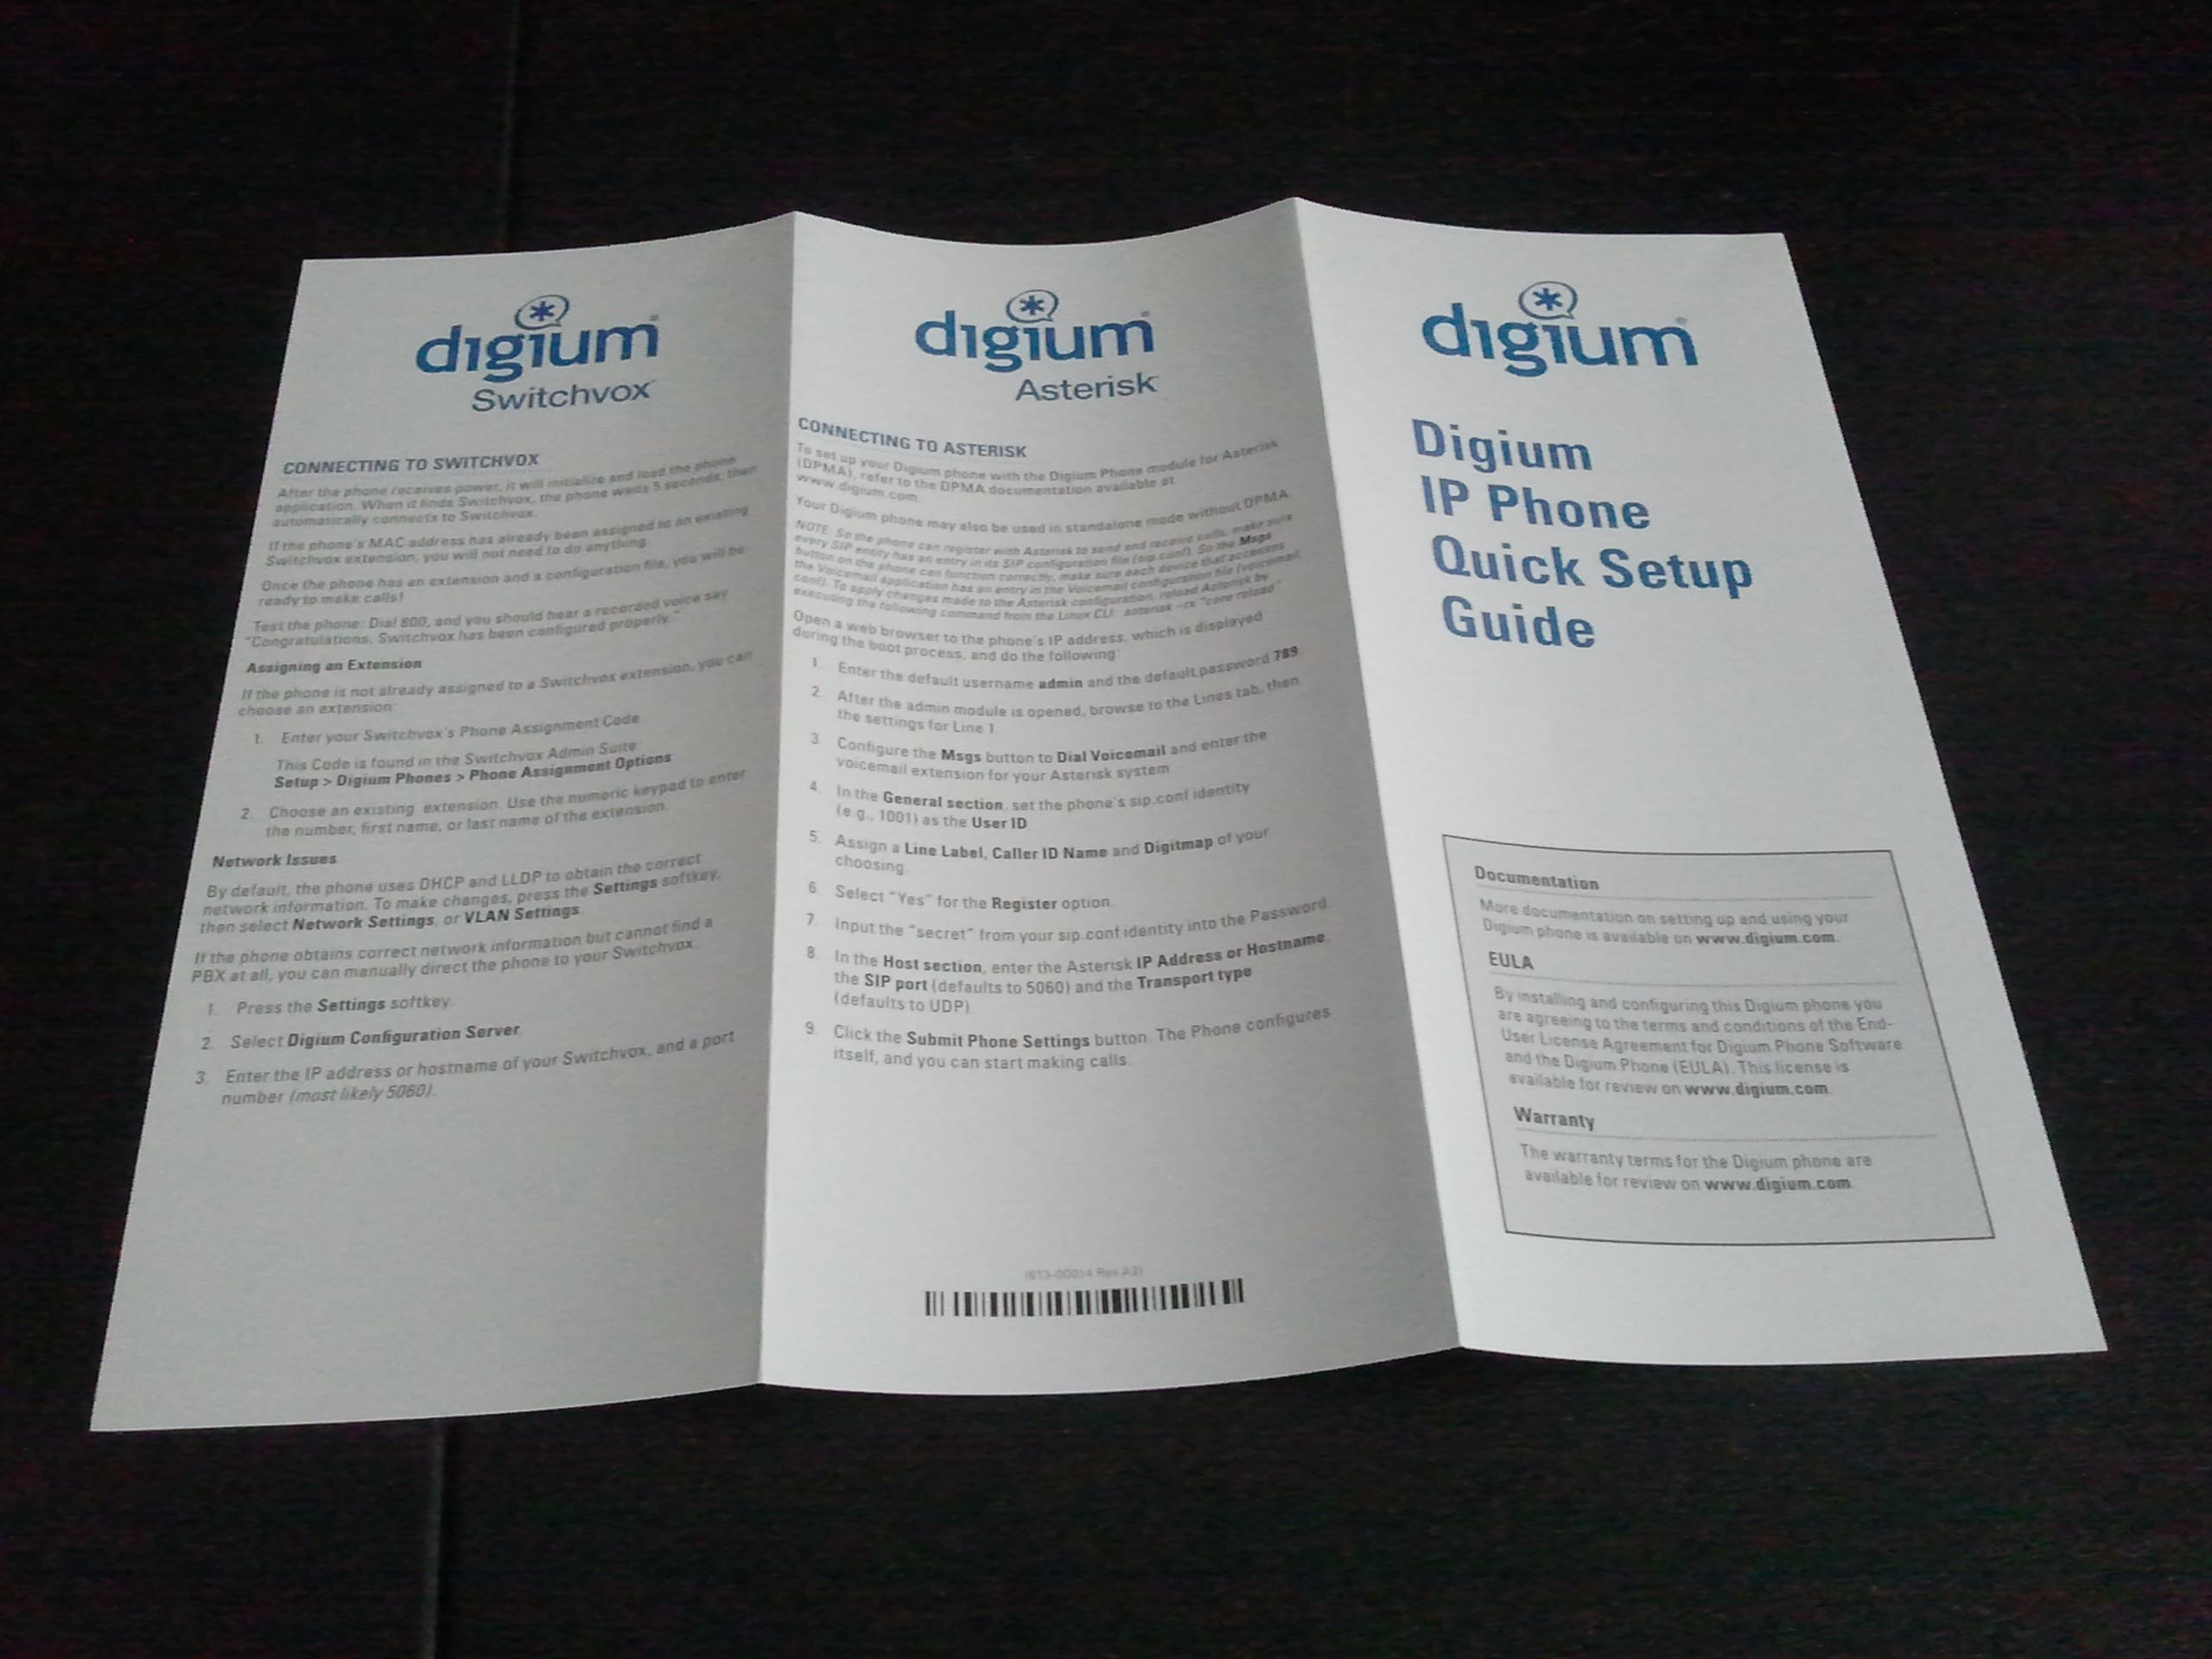 Digium phone